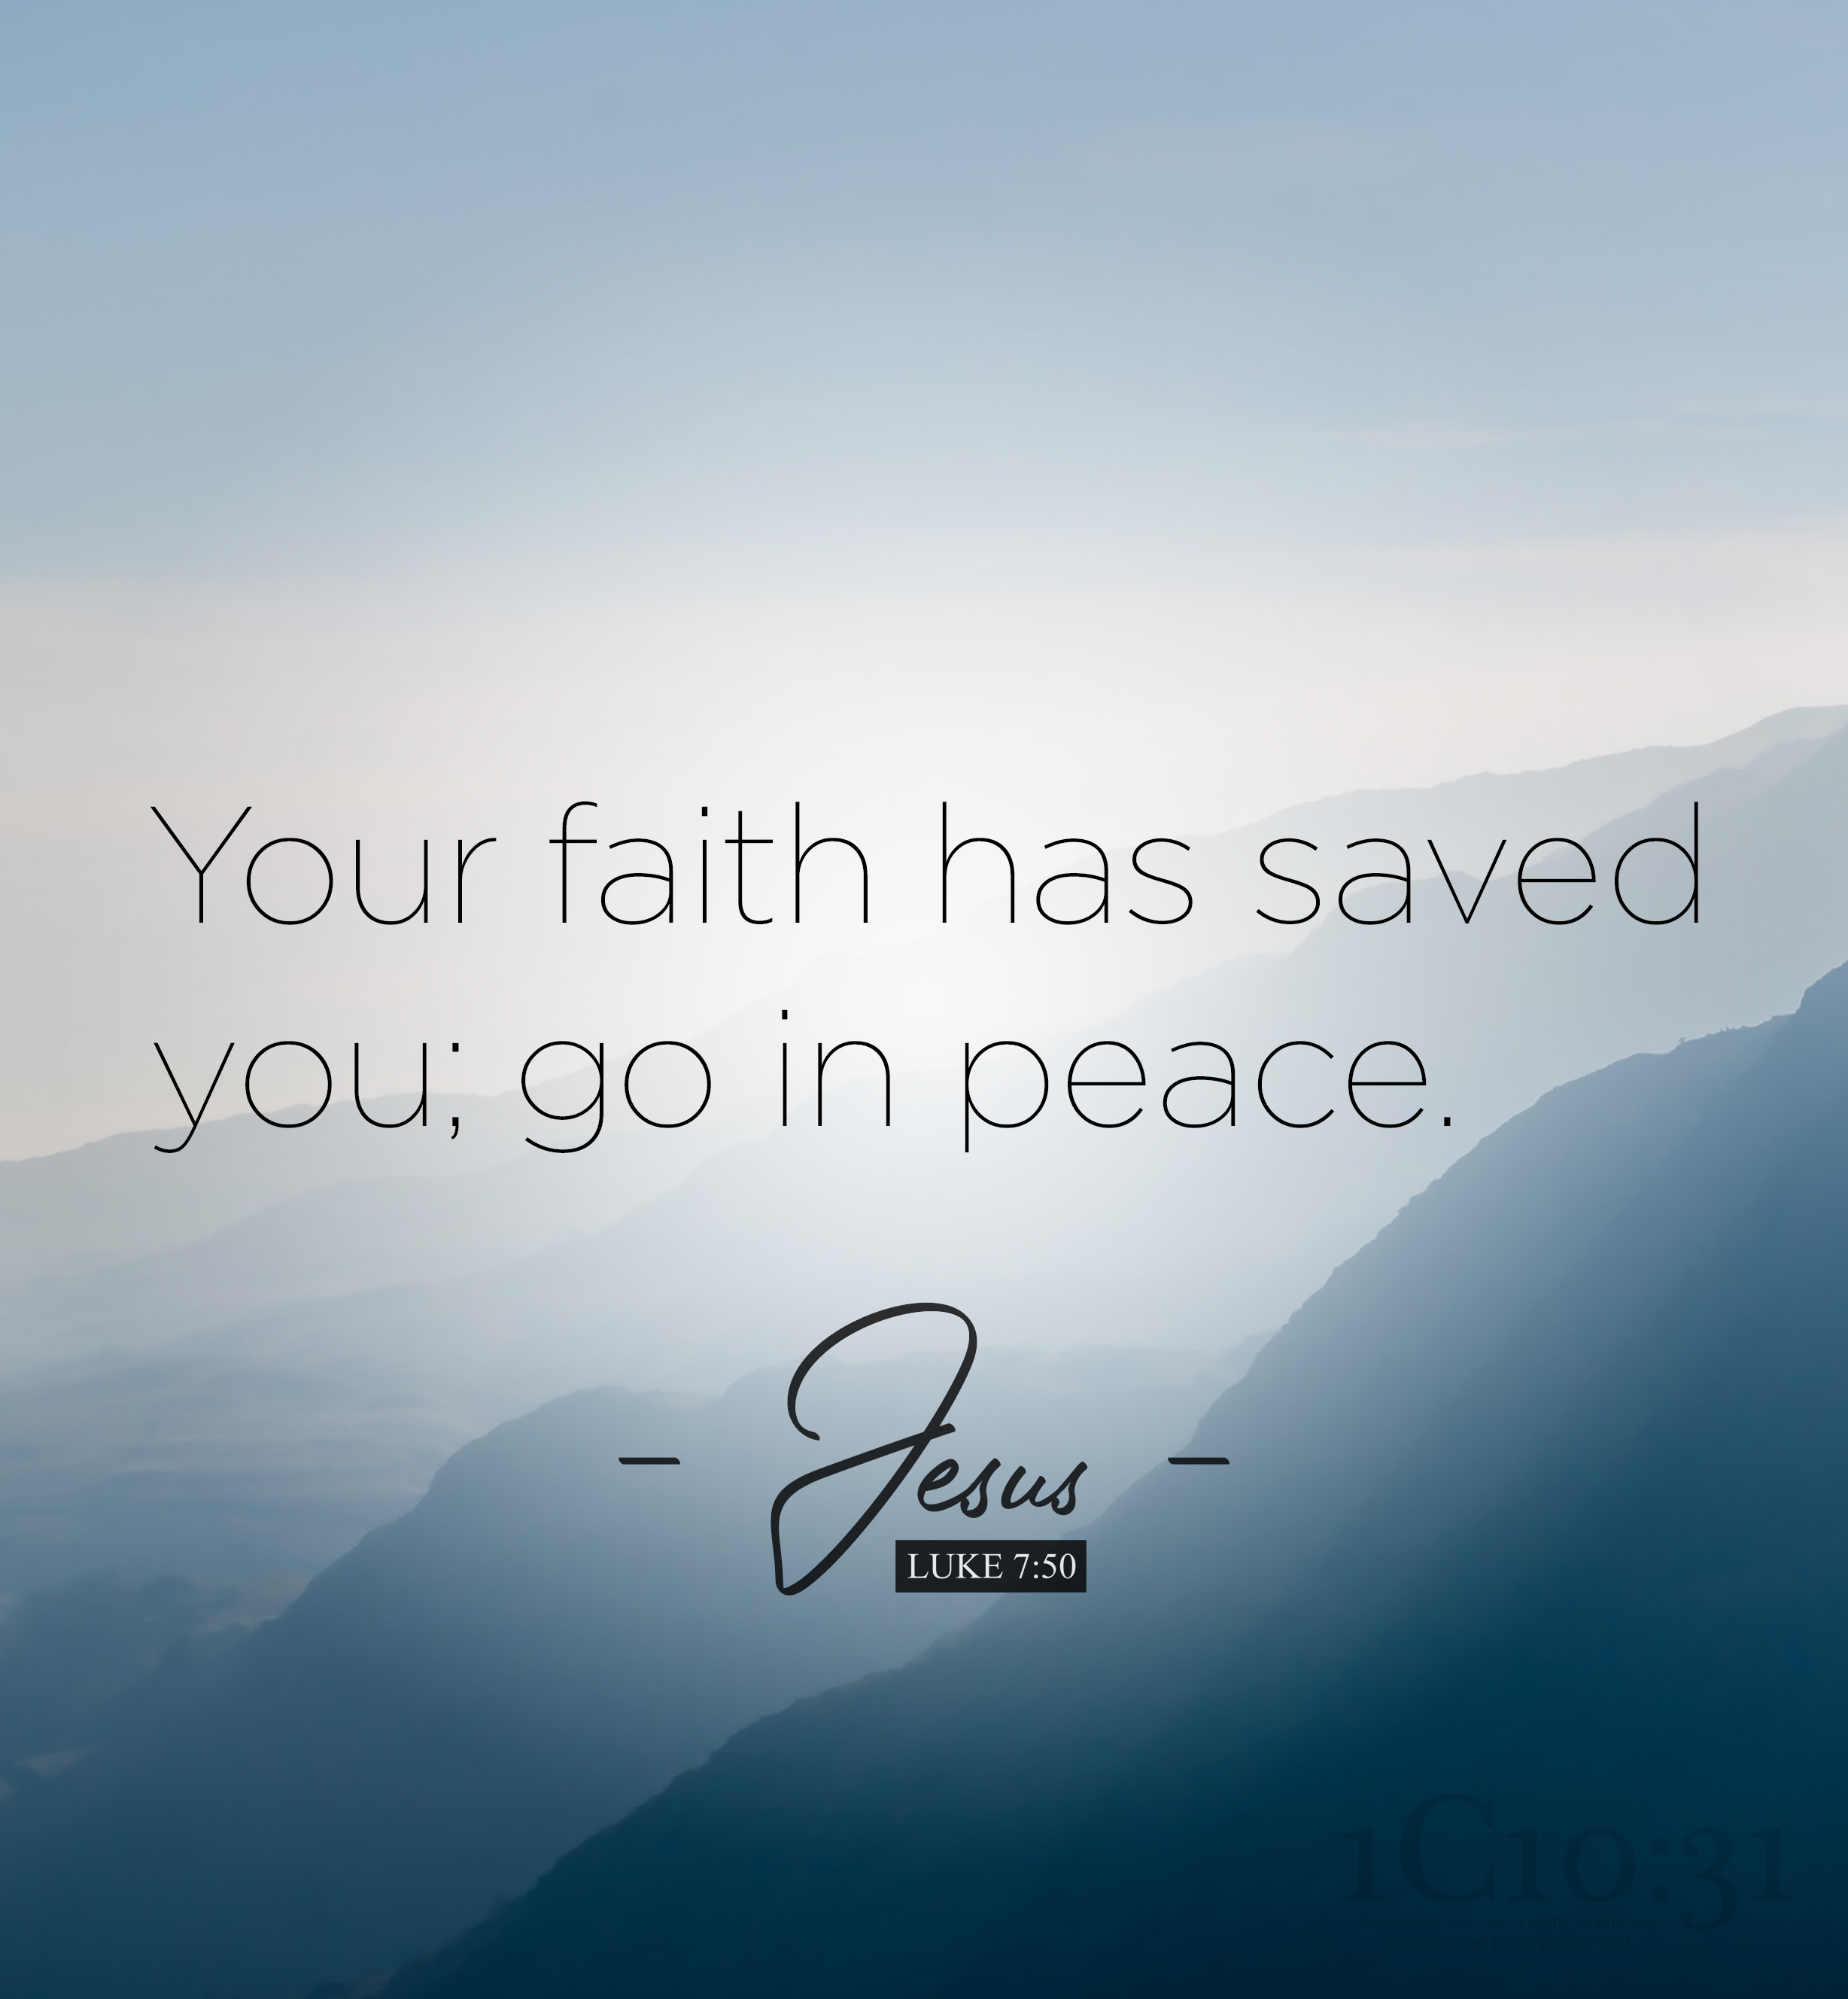 """Luke 7:50 Jesus said to the woman, """"Your faith has saved you; go in peace."""""""